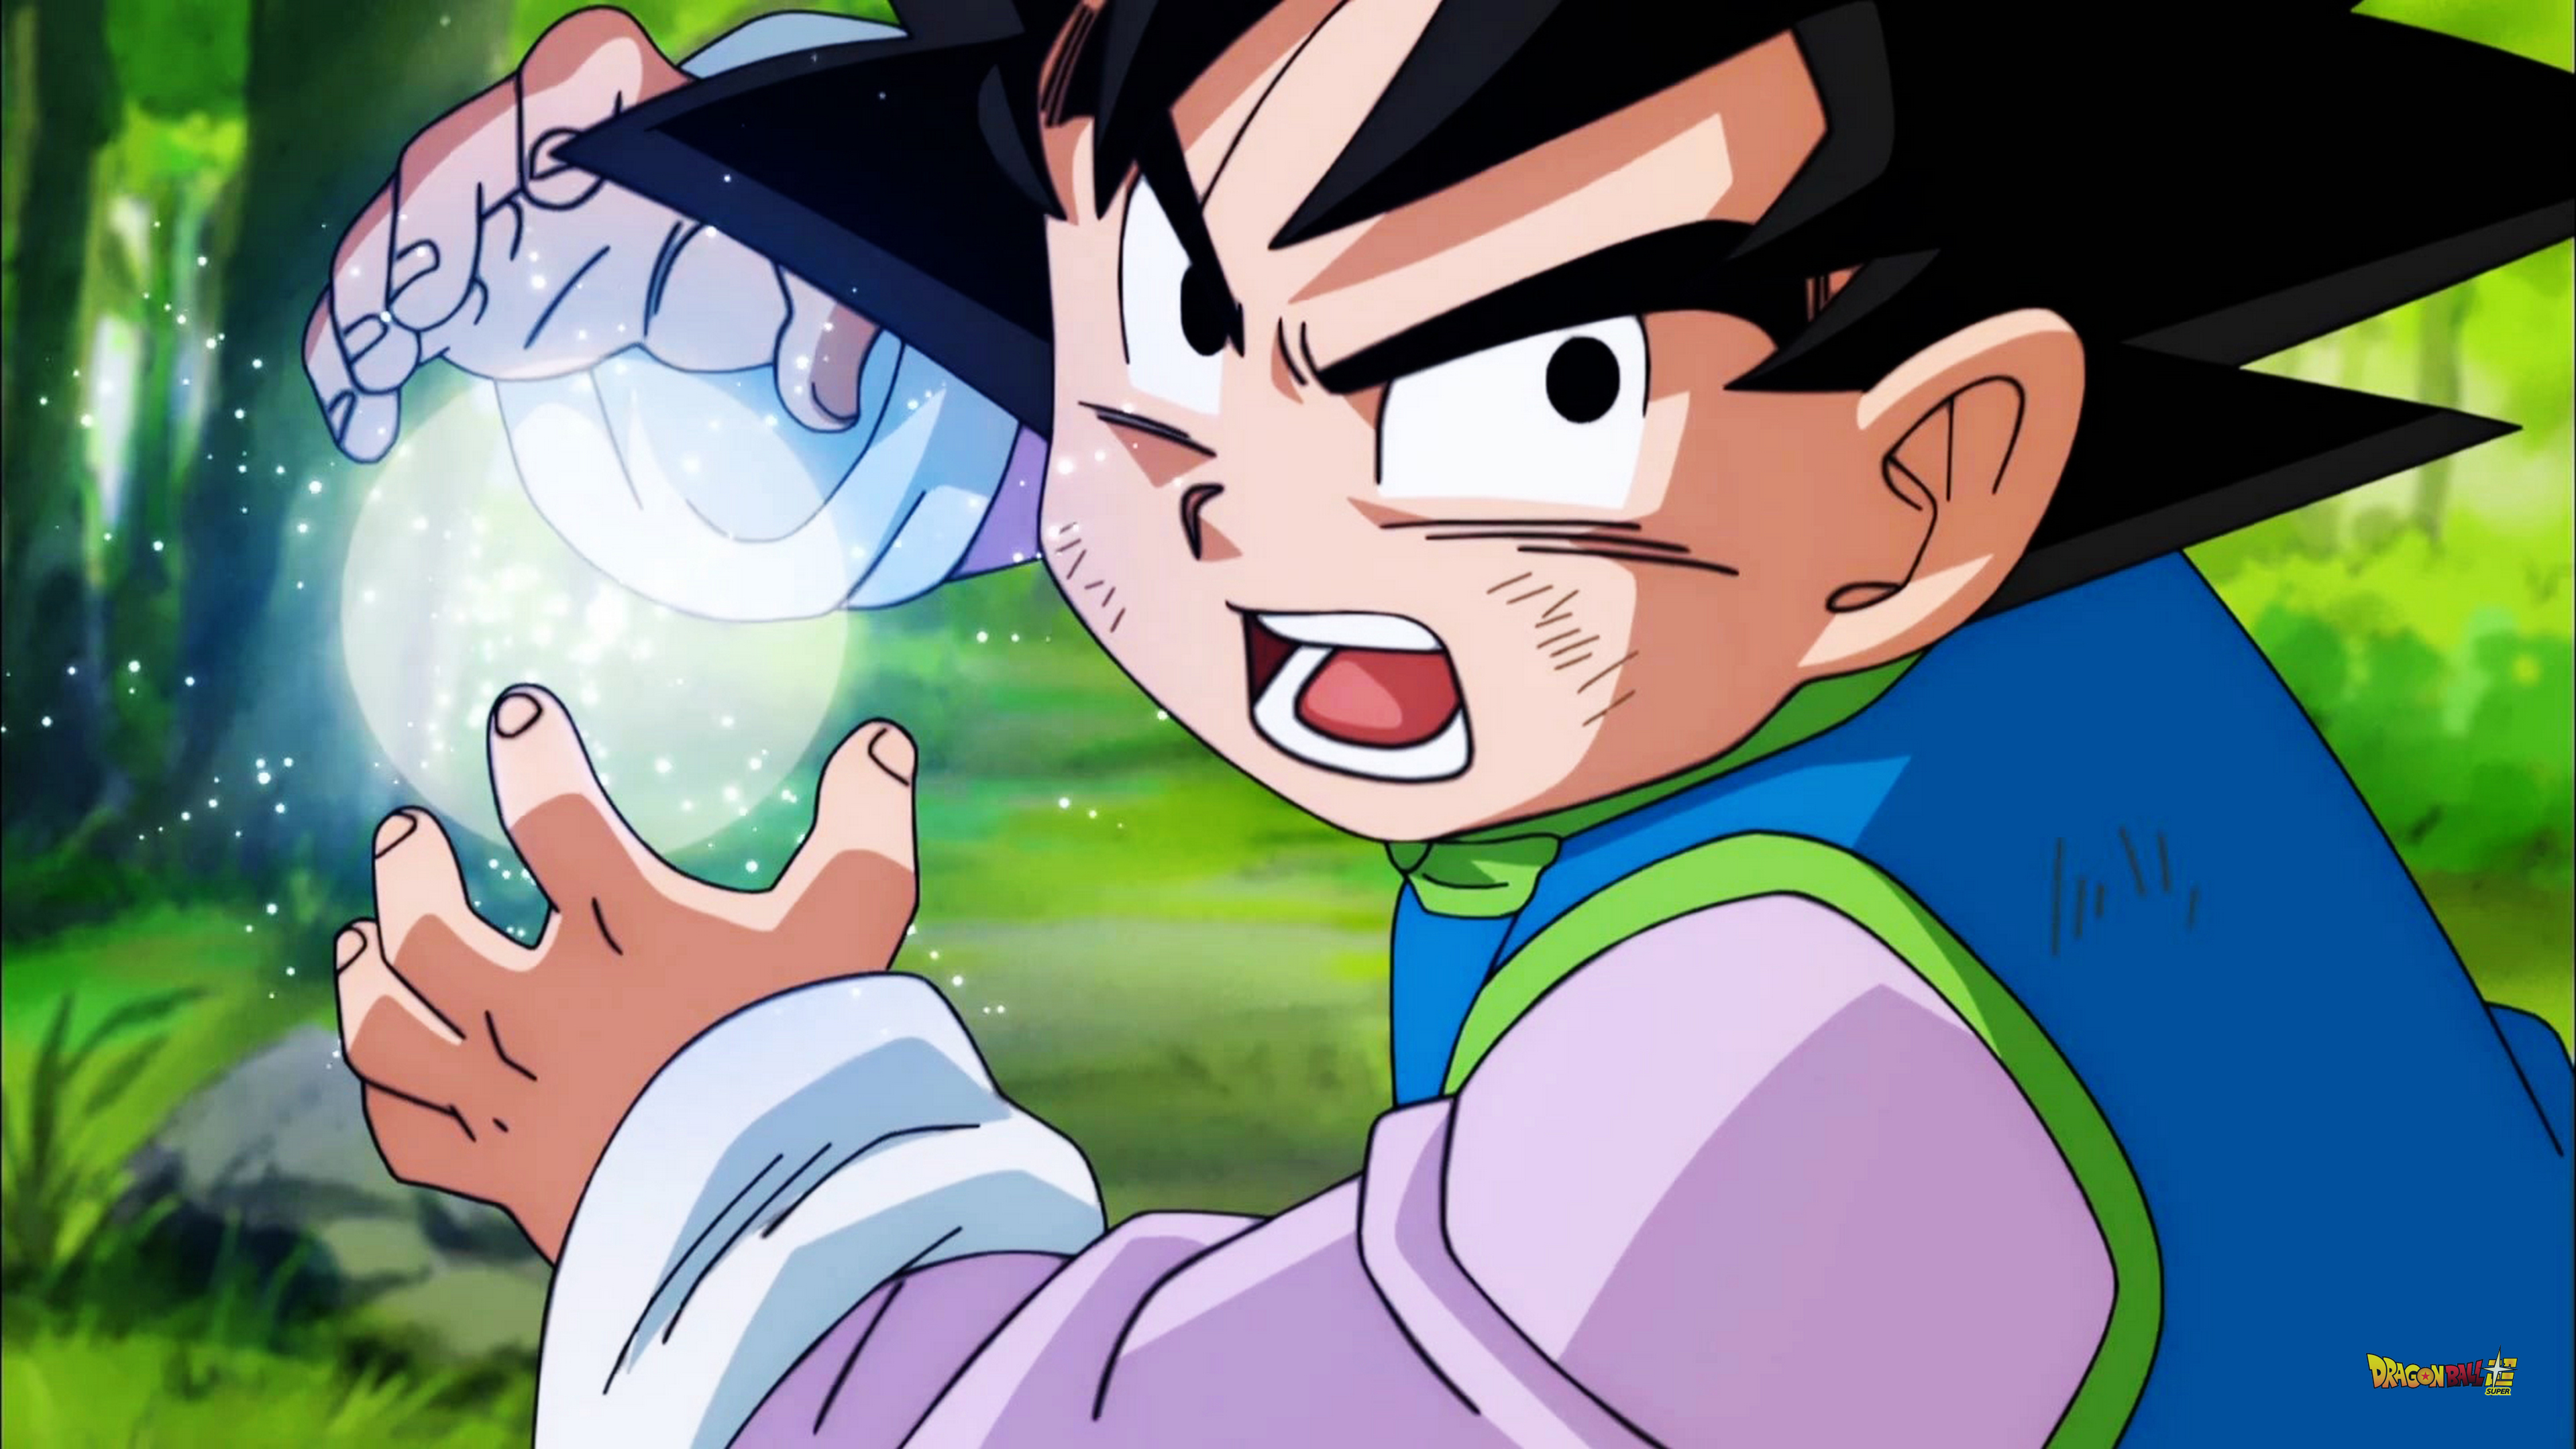 Dragon Ball Super Season 1 Episode 1 S01E01 4k uHD Wallpapers 26 Goku works in his radish field, but wants to go training and fighting.